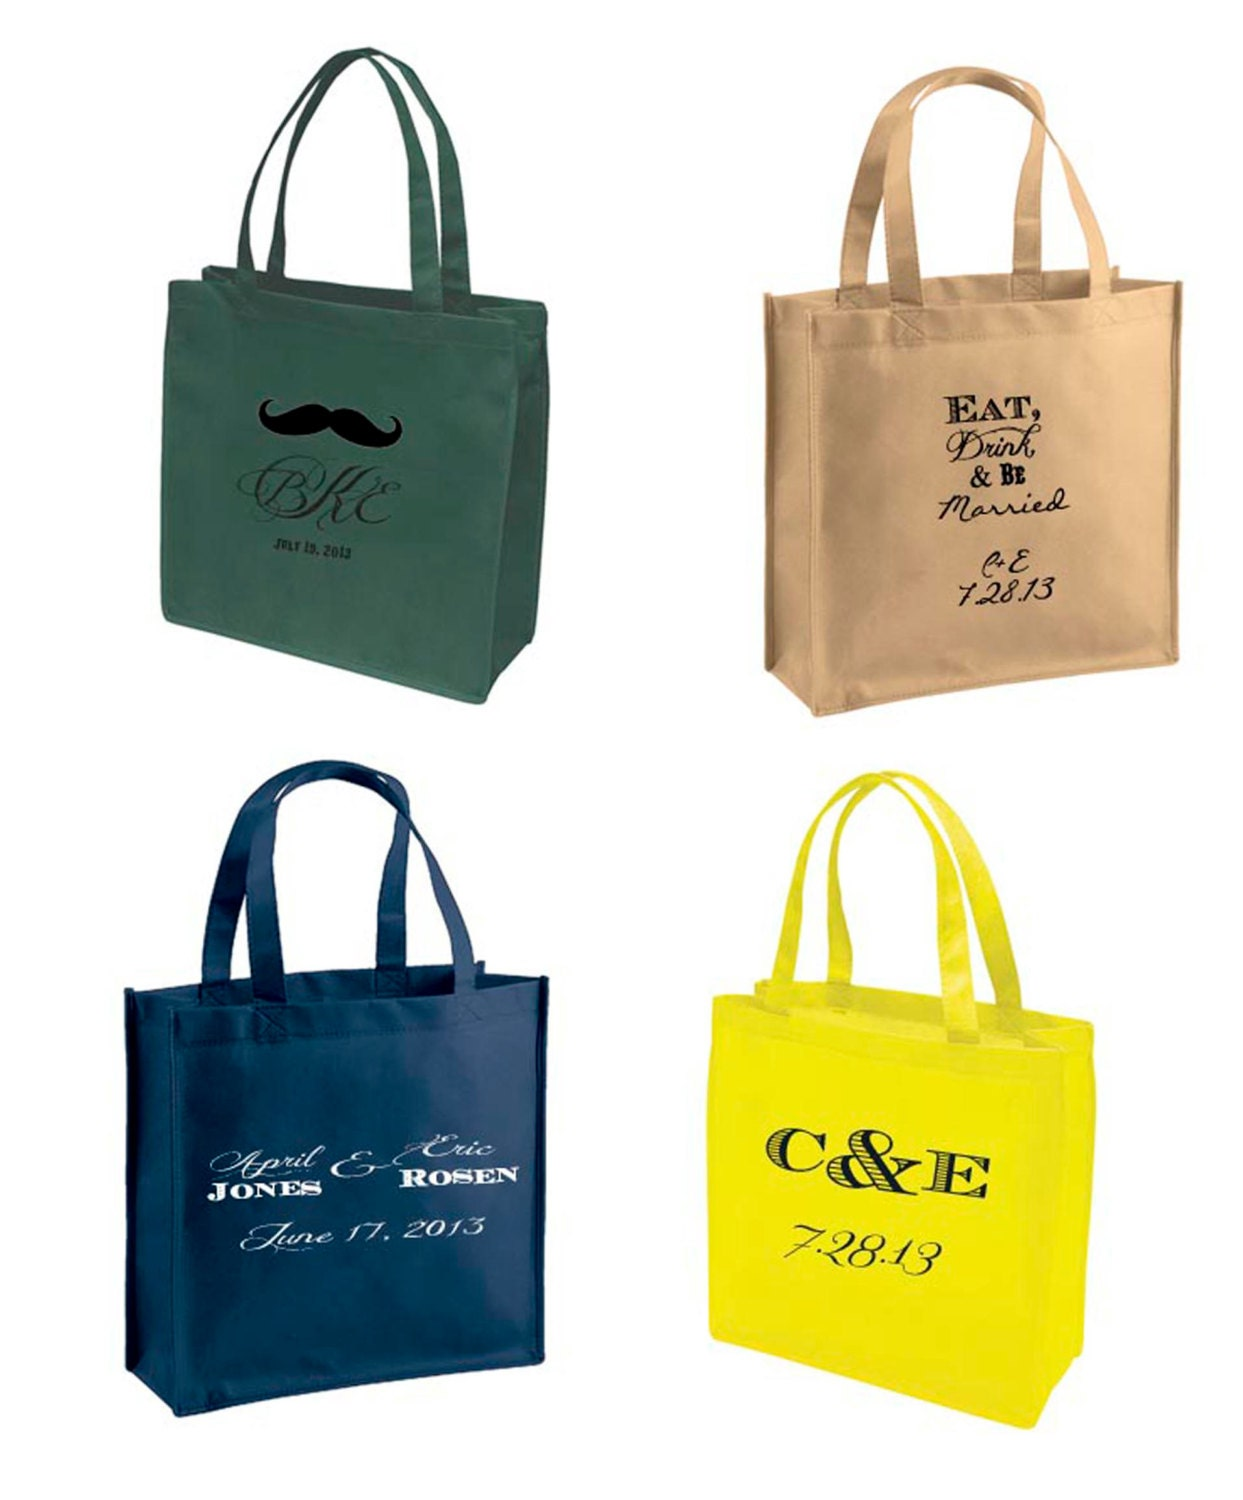 Recycled and Recyclable Custom Tote Bags Wedding Favors that